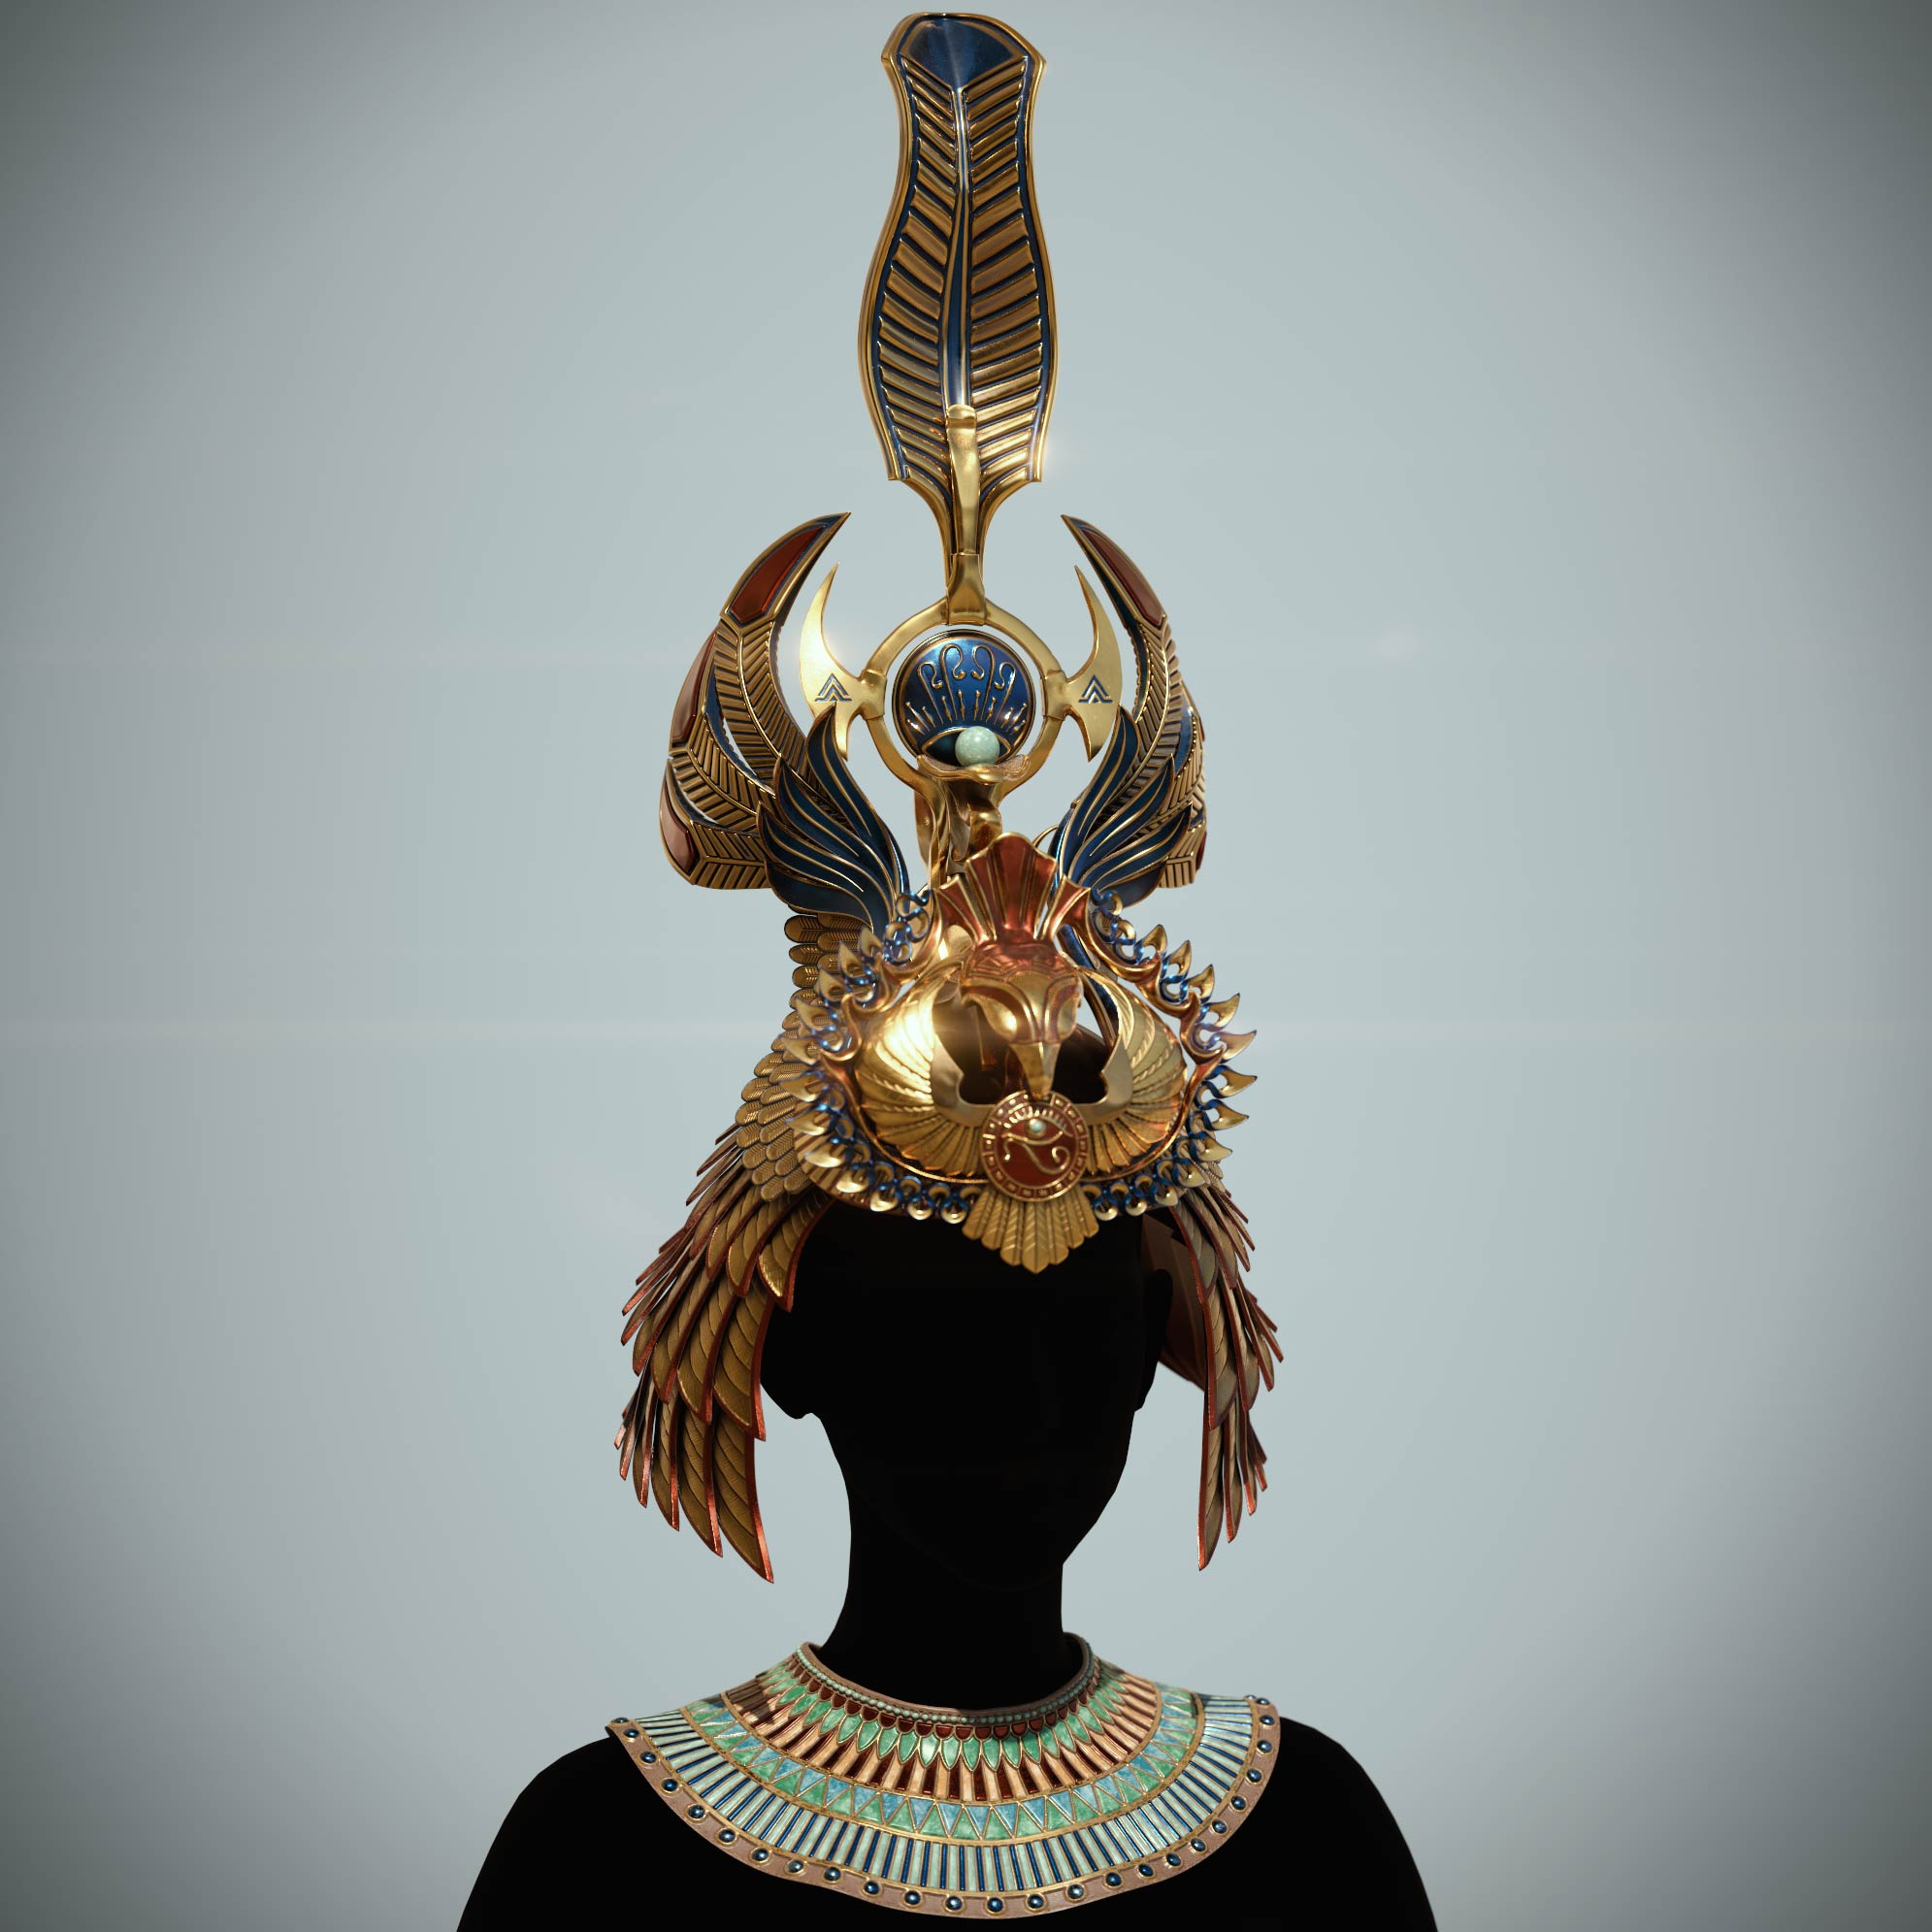 egyptian-queen-crown_substance_painter_texturing Egyptian queen crown